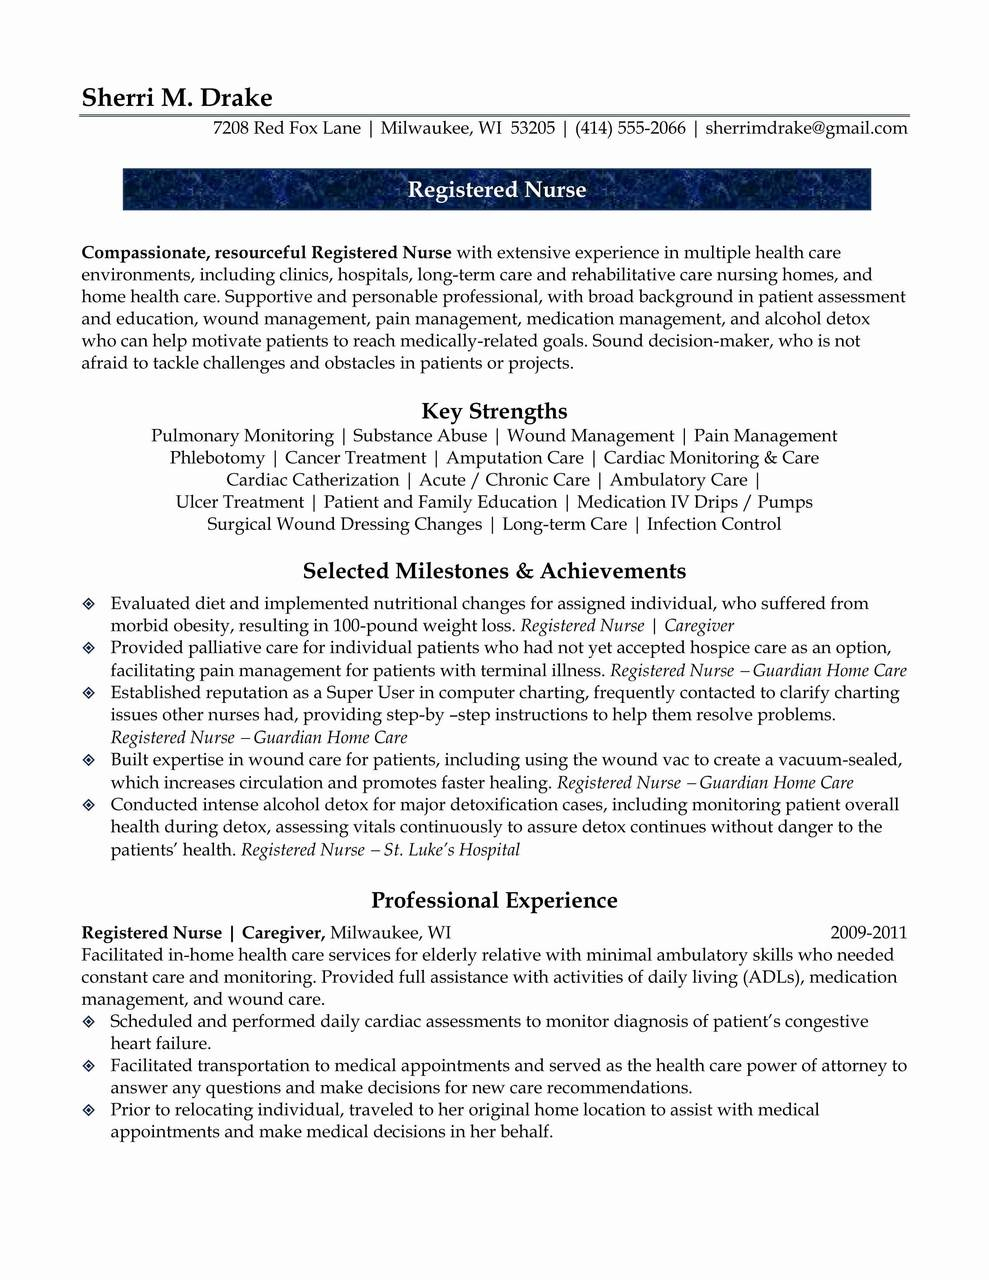 Home Care Nursing Resume - Resume for Nursing Job Literarywondrous Critical Care Nurse Resume